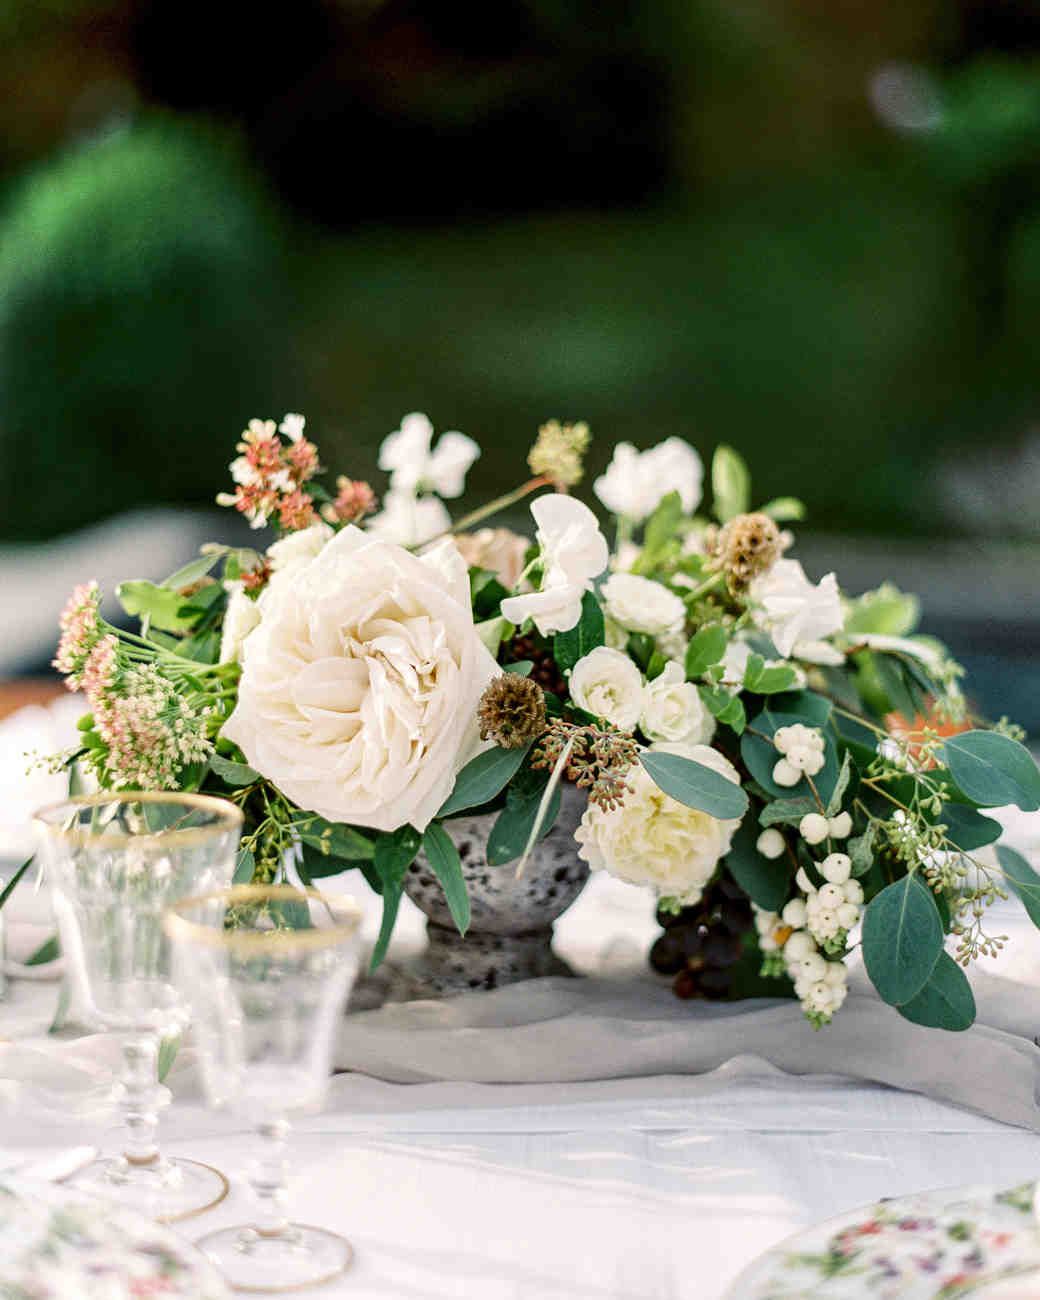 Centerpiece Floral Arrangements Home Design Ideas